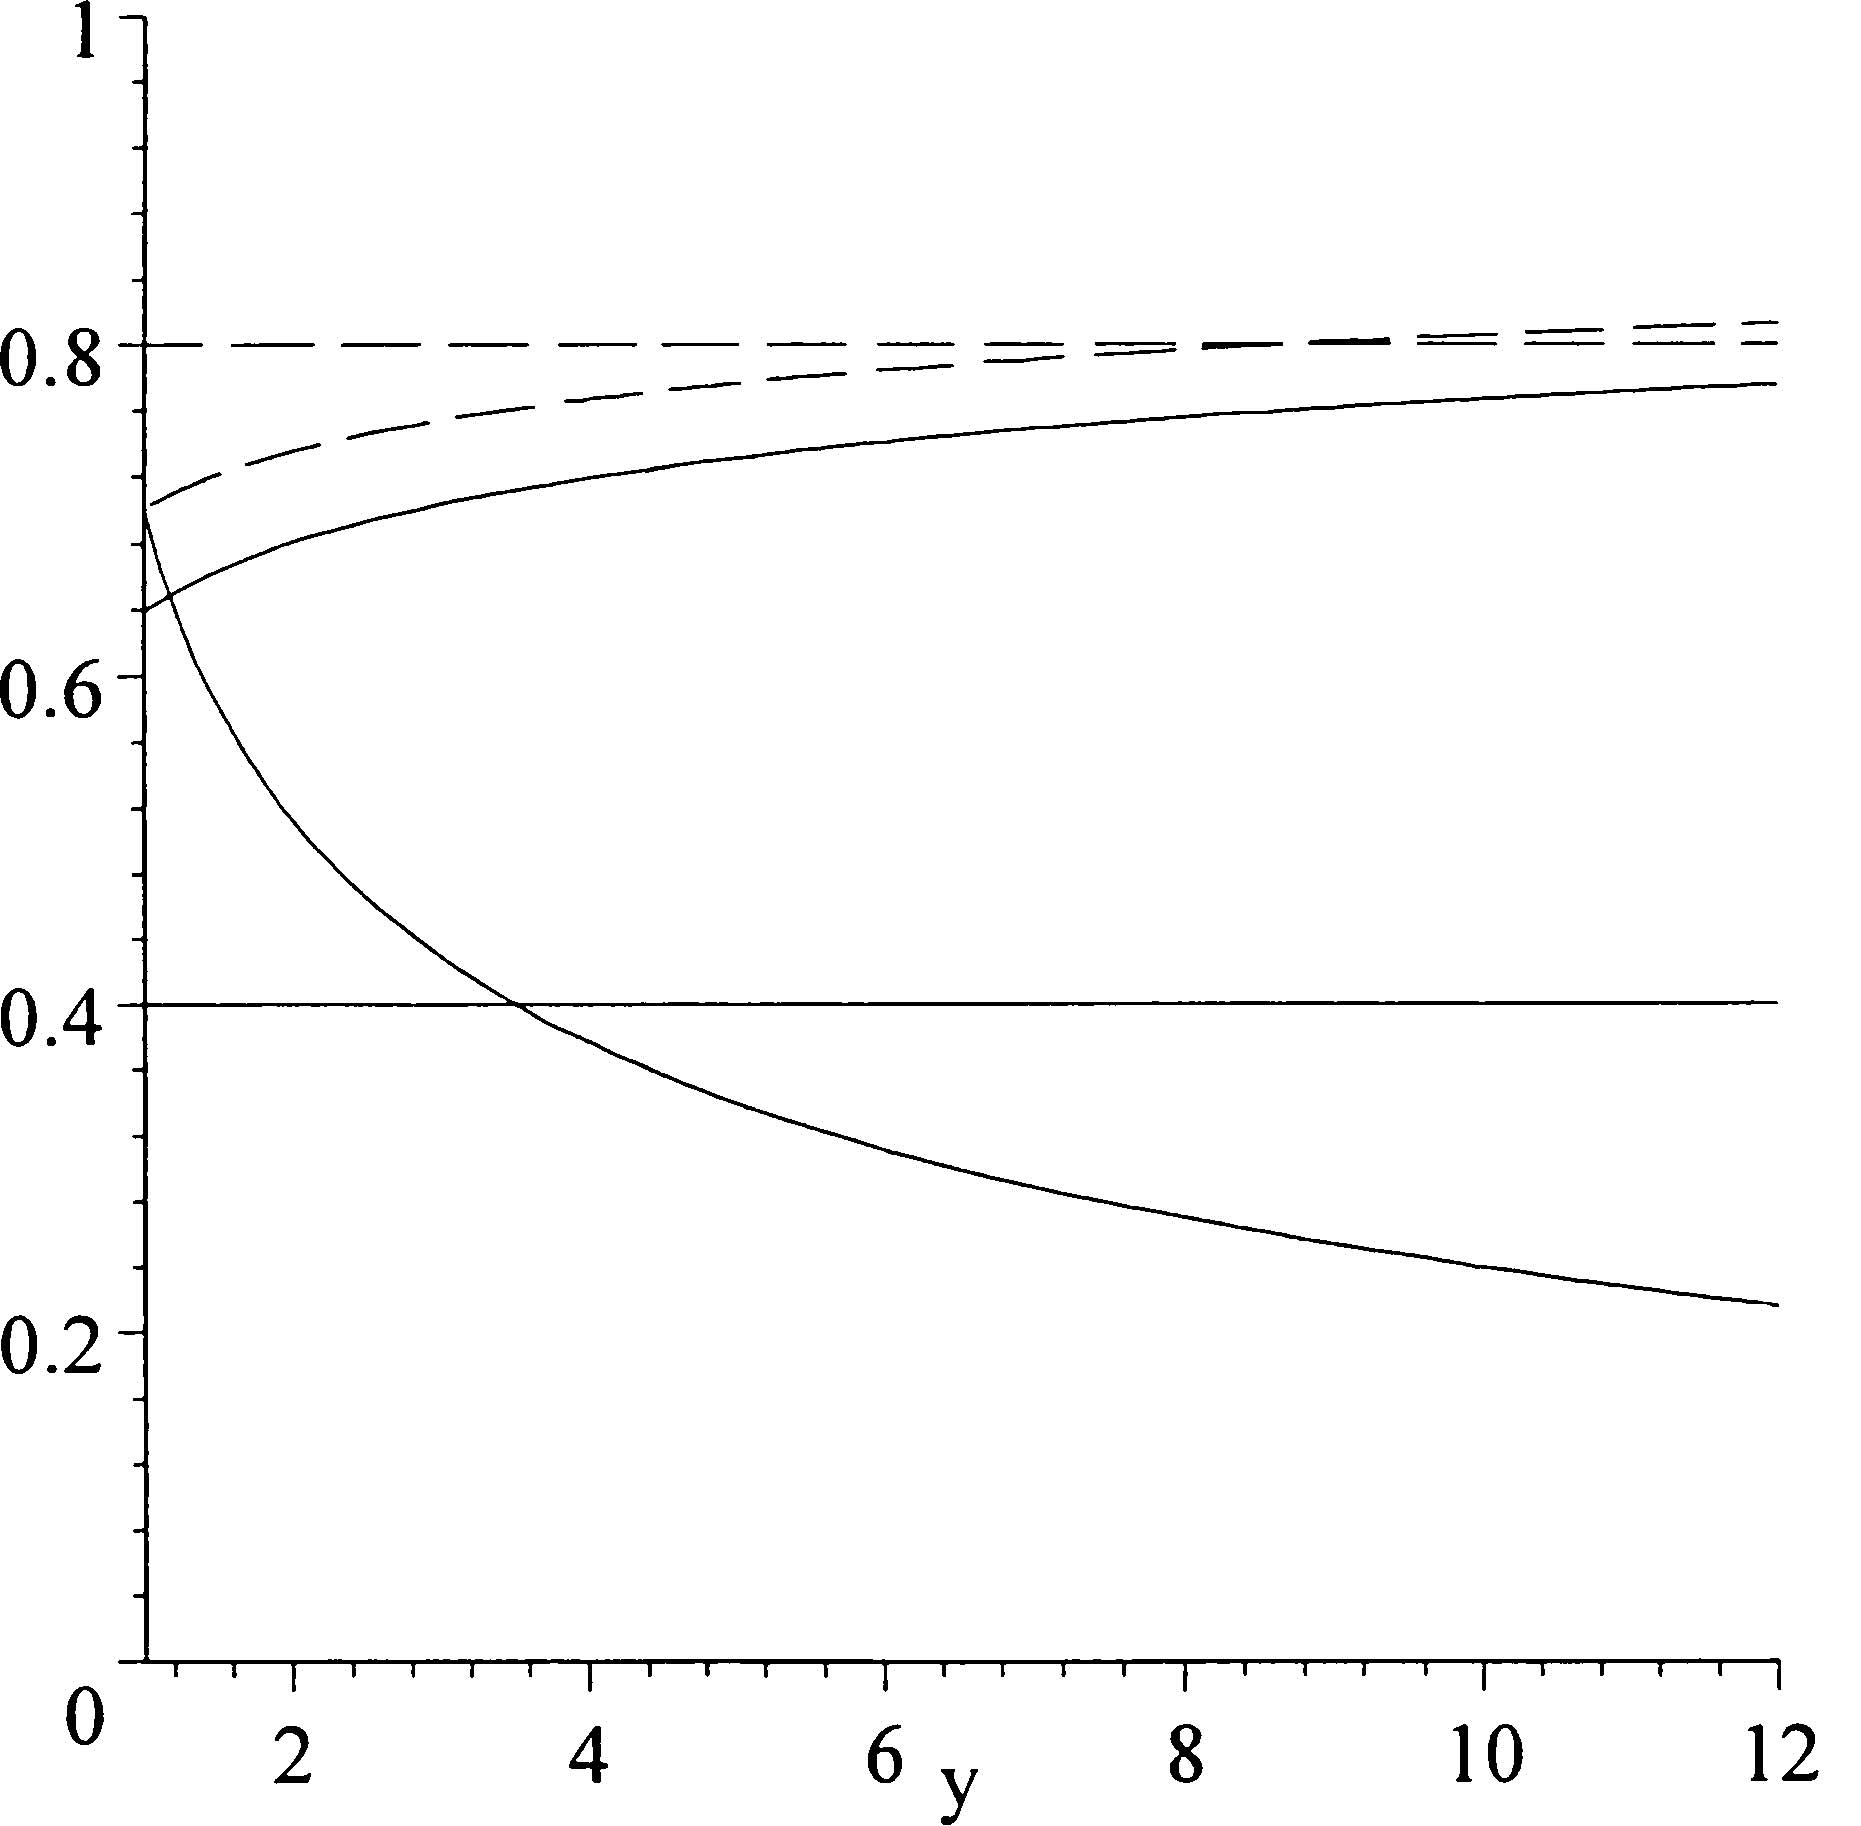 Democratic equilibrium tax rates are indicated by thick lines (q = 0.5,λ= 0.25).